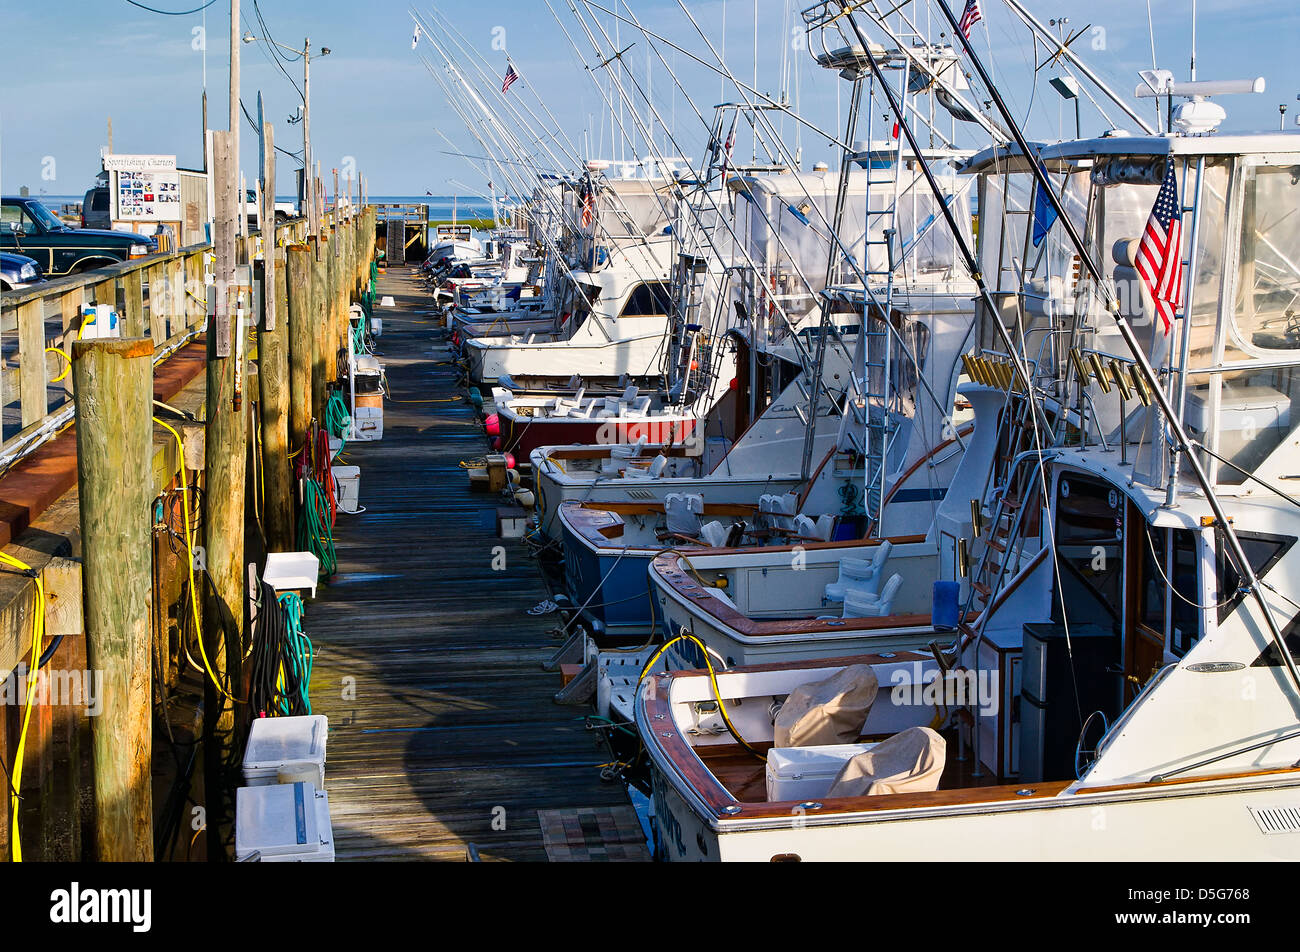 Charter fishing boats docked in Rock Harbor, Orleans, Cape Cod, Massachusetts, USA - Stock Image